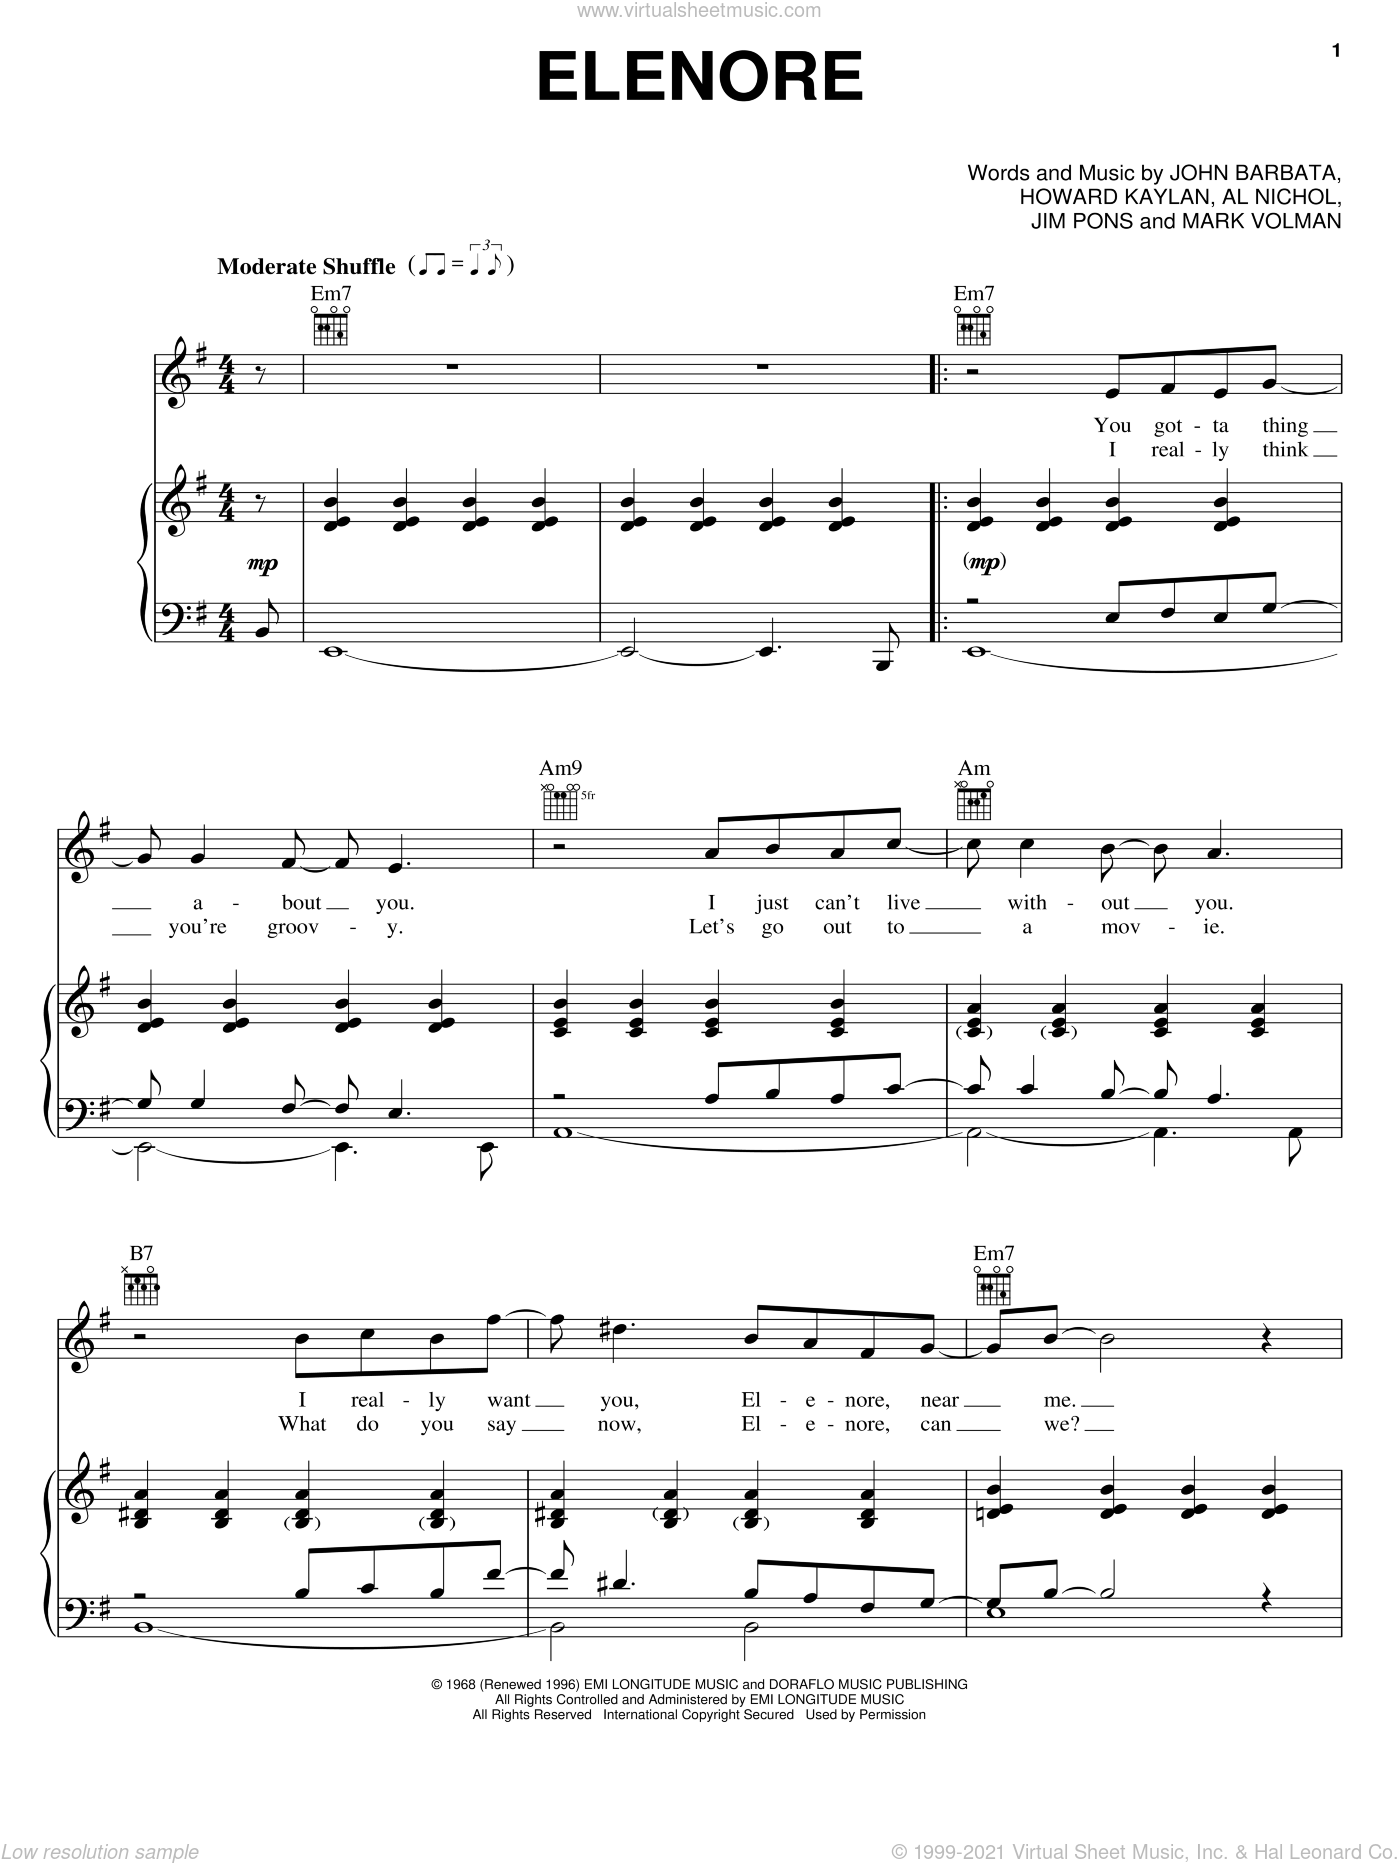 Elenore sheet music for voice, piano or guitar by The Turtles, Al Nichol, Howard Kaylan and Jim Pons, intermediate skill level